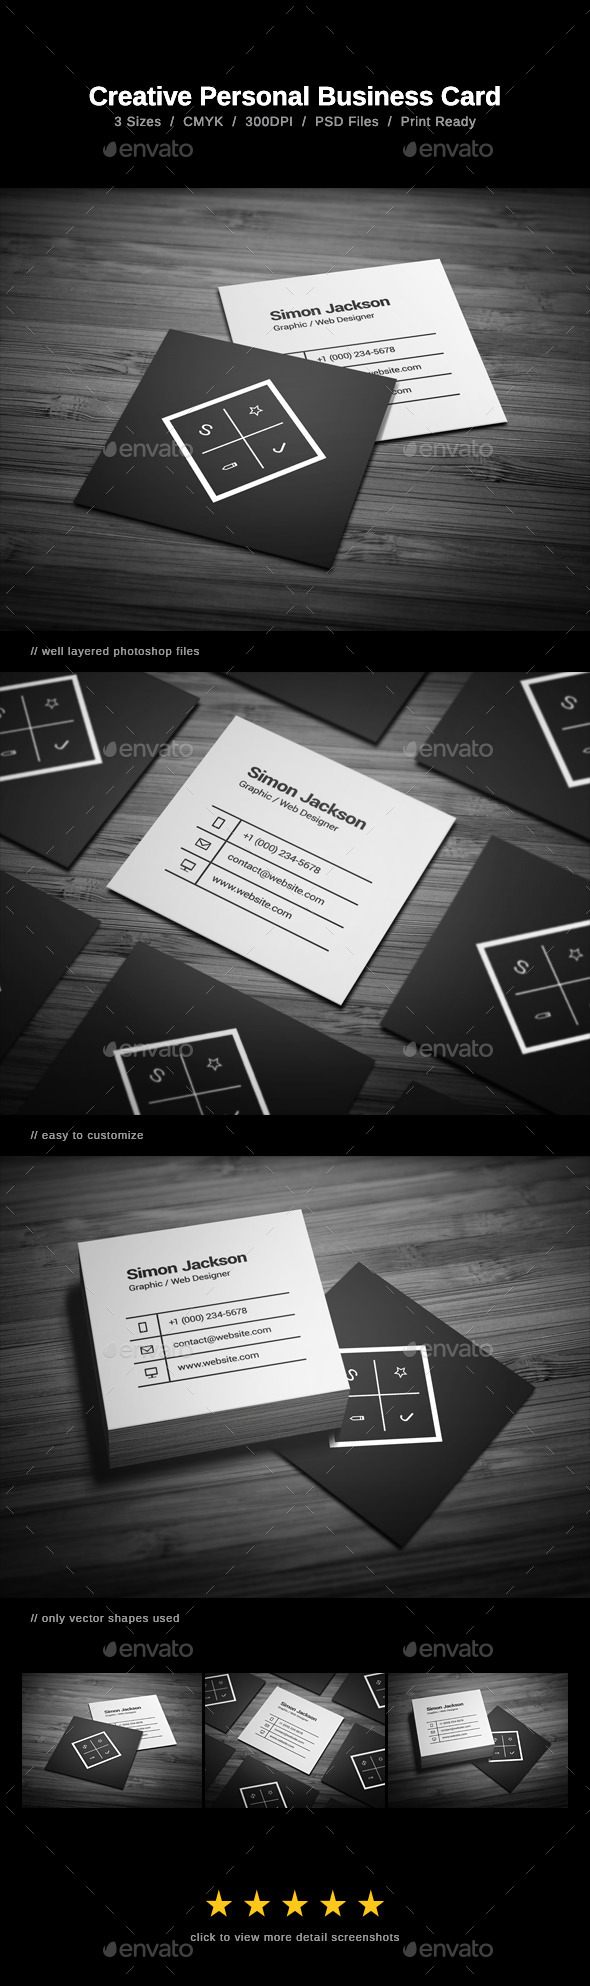 GraphicRiver Creative Personal Business Card 11182009